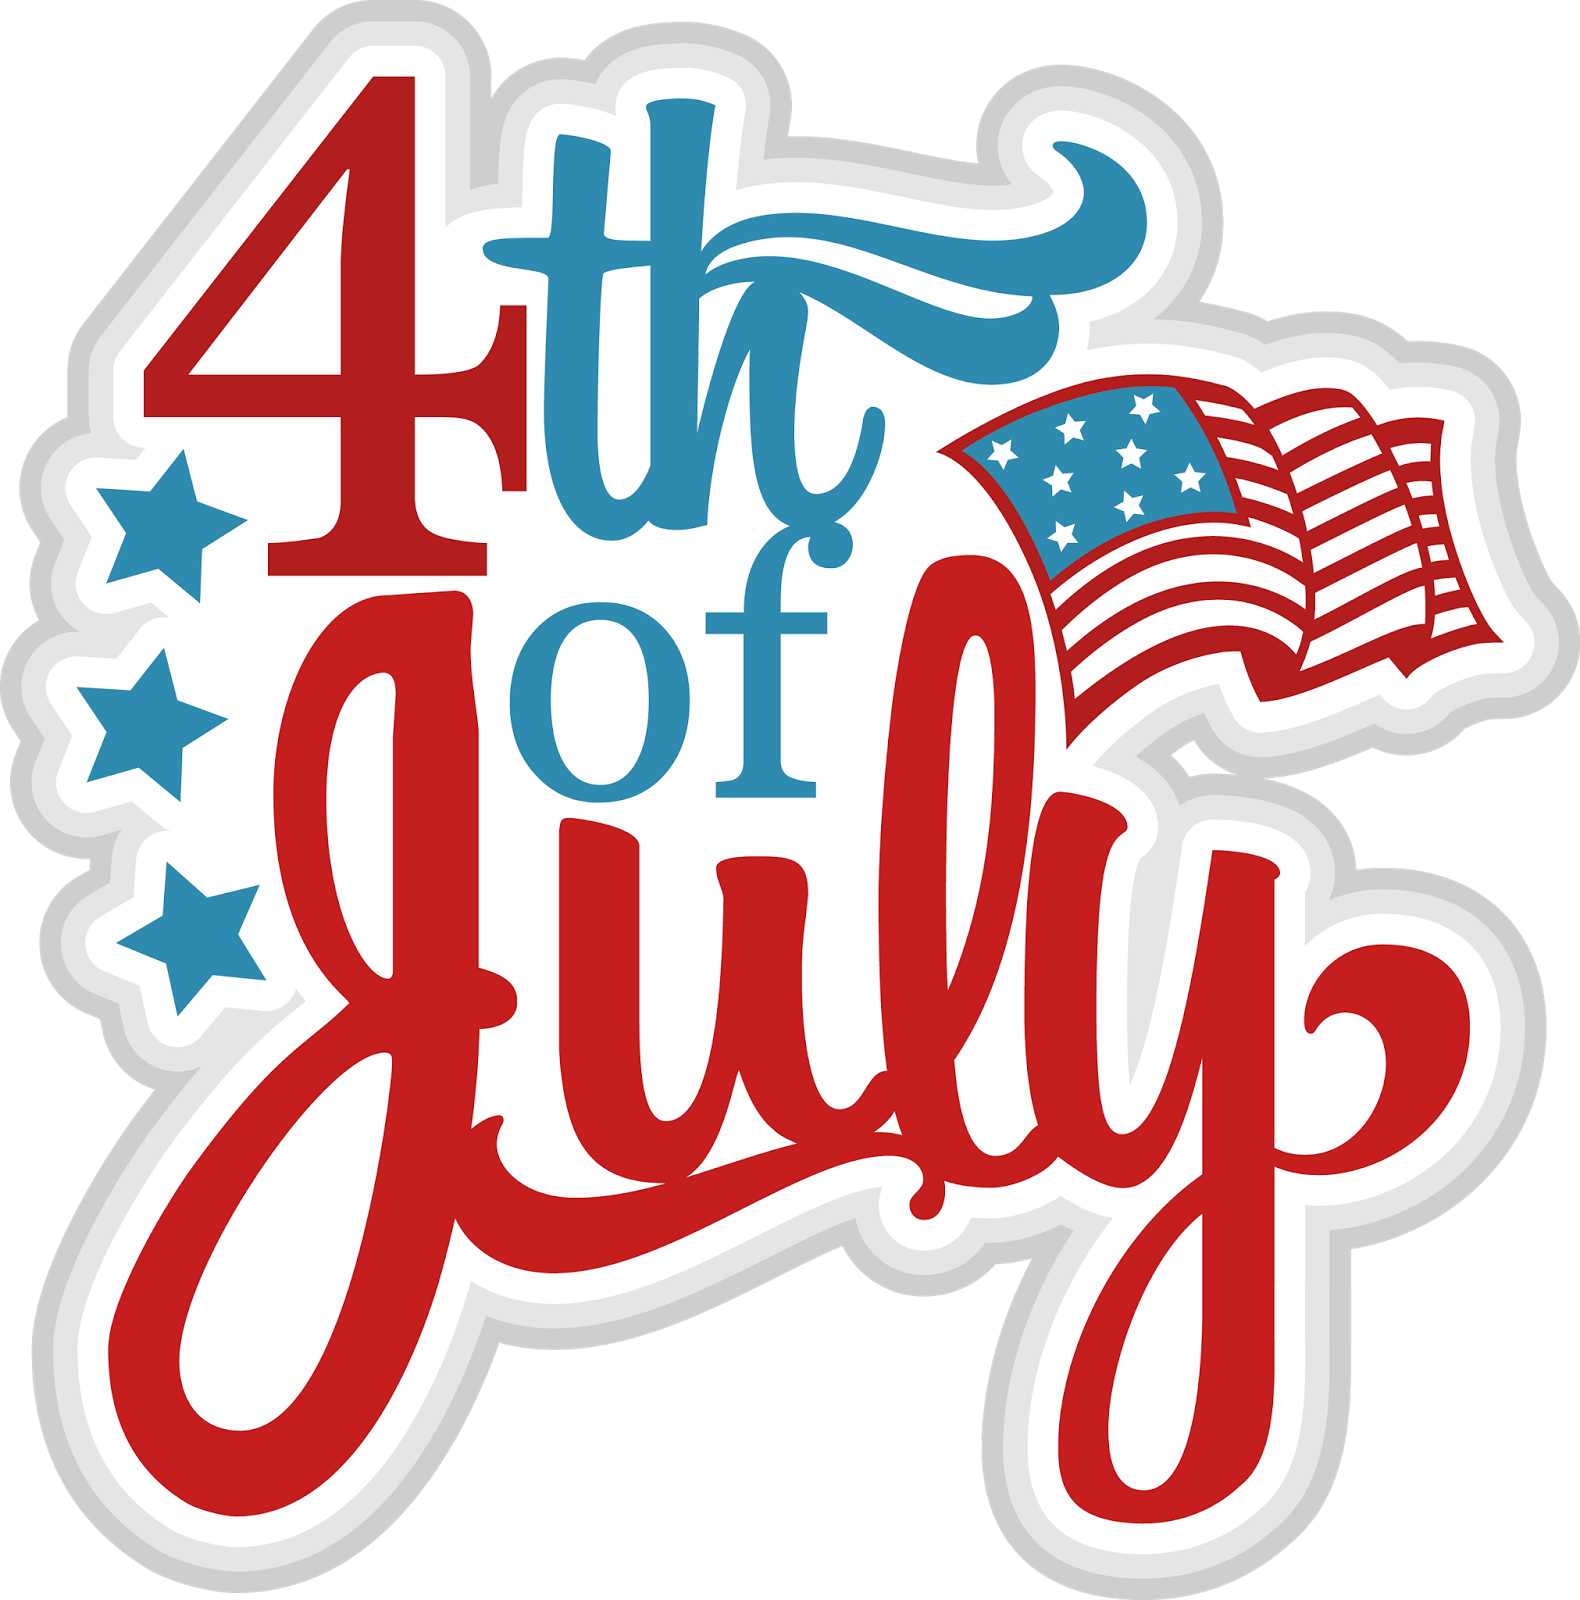 Happy 4th of July Clipart Images